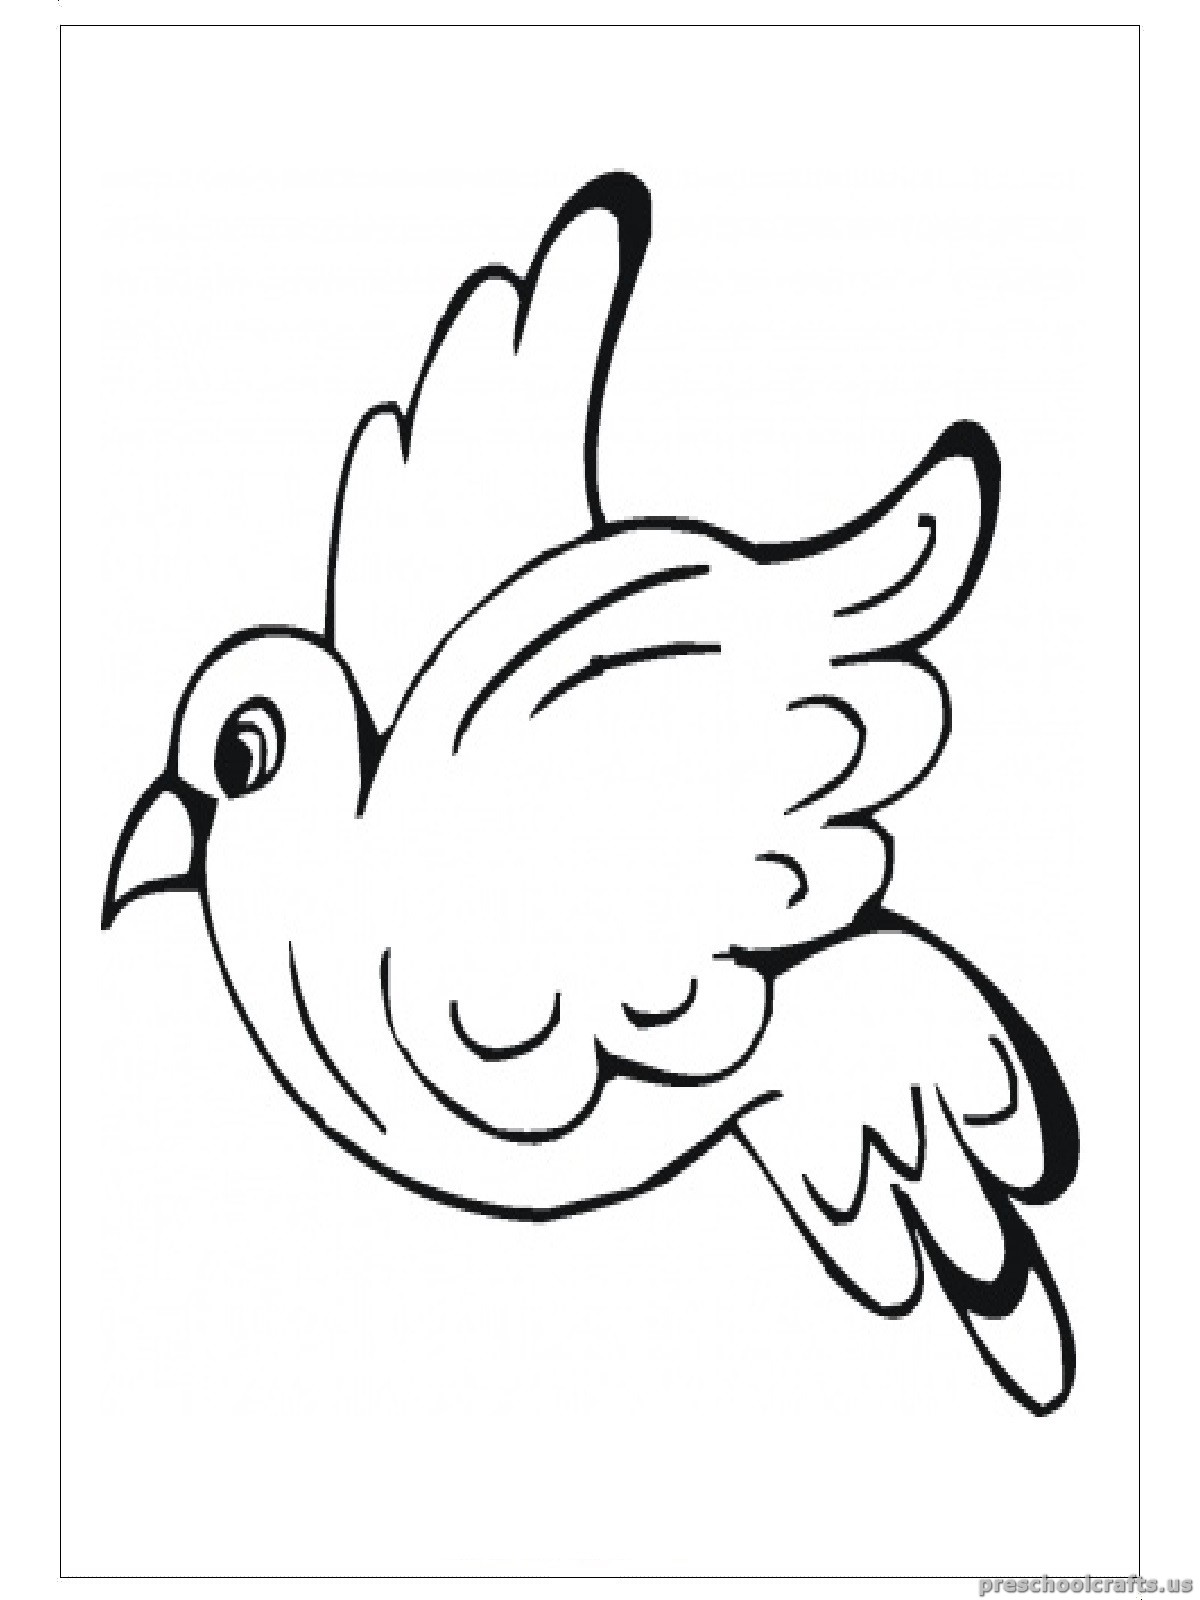 swallow animals coloring pages for preschool - Preschool Animal Coloring Pages